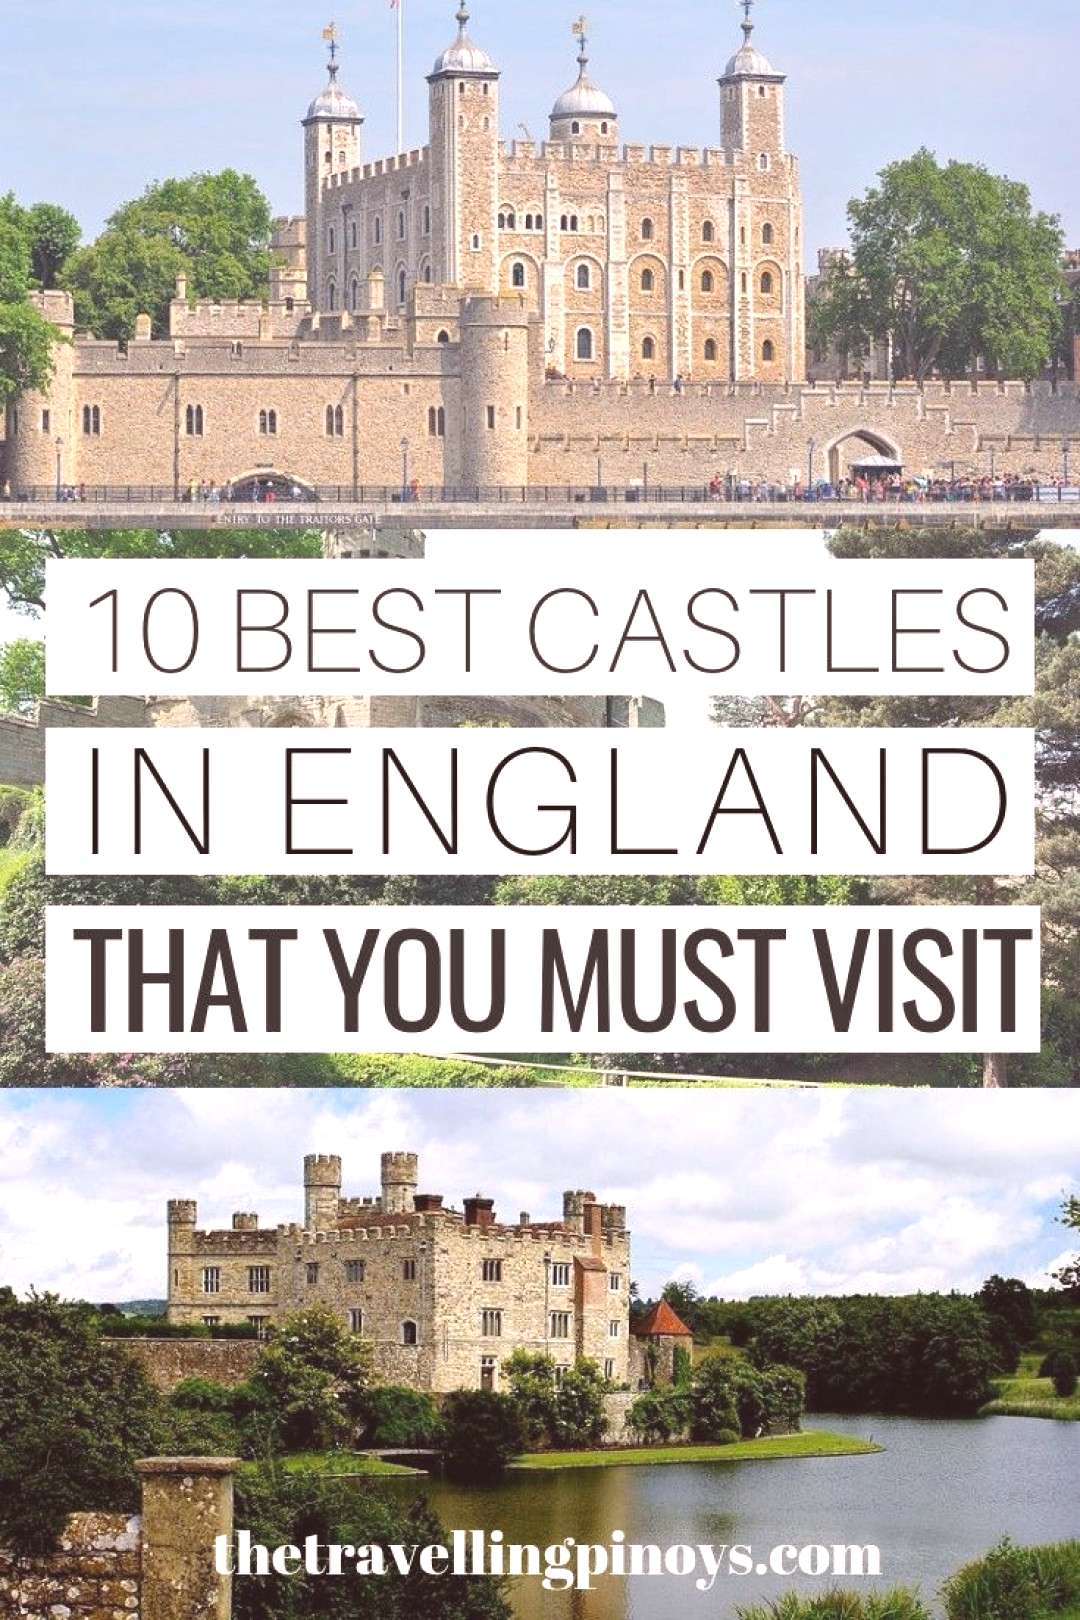 10 Best Castles in England To Visit -